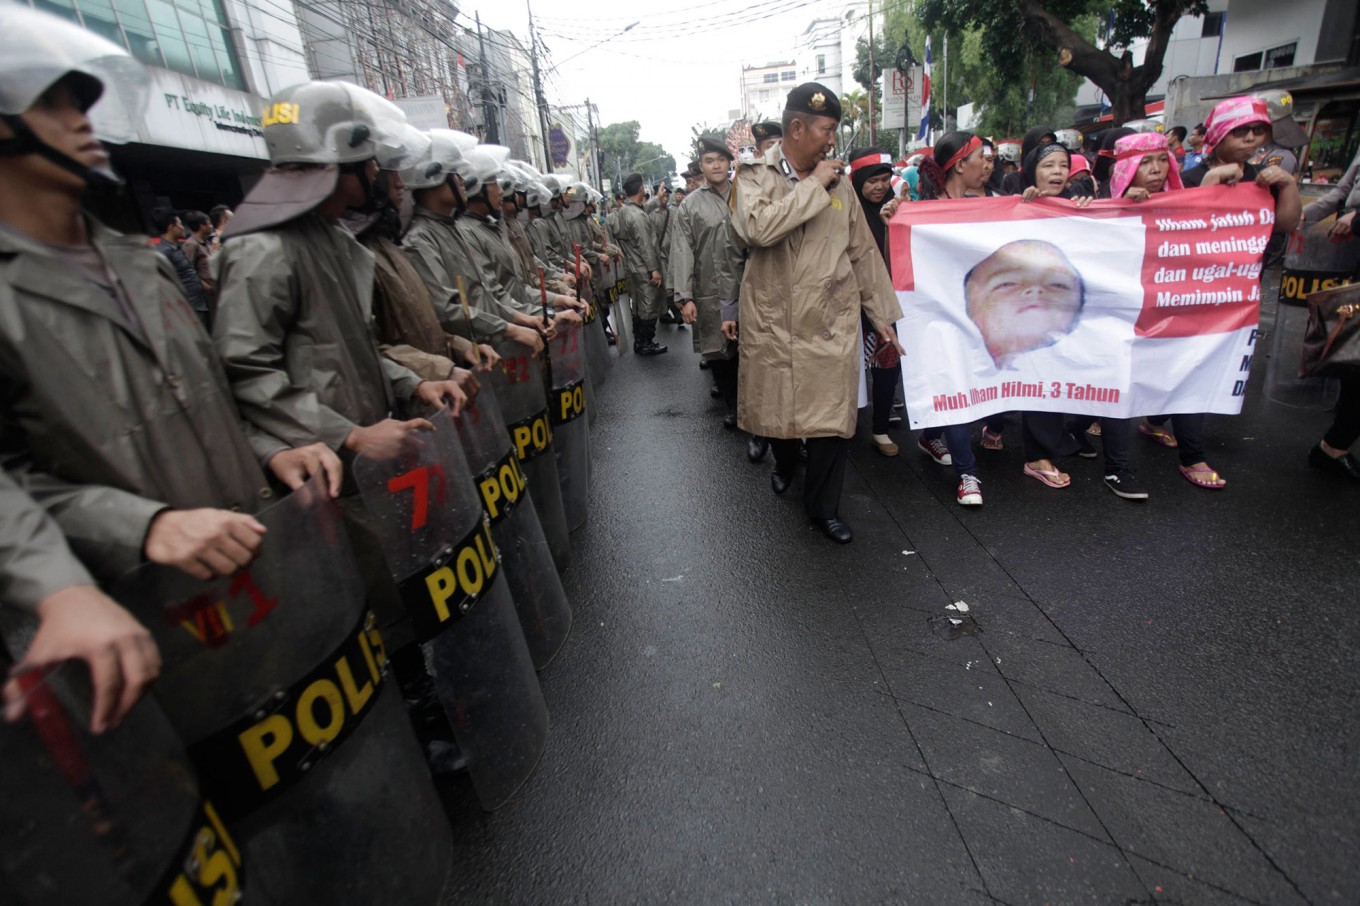 Thousands to protest against Ahok's alleged blasphemy remarks